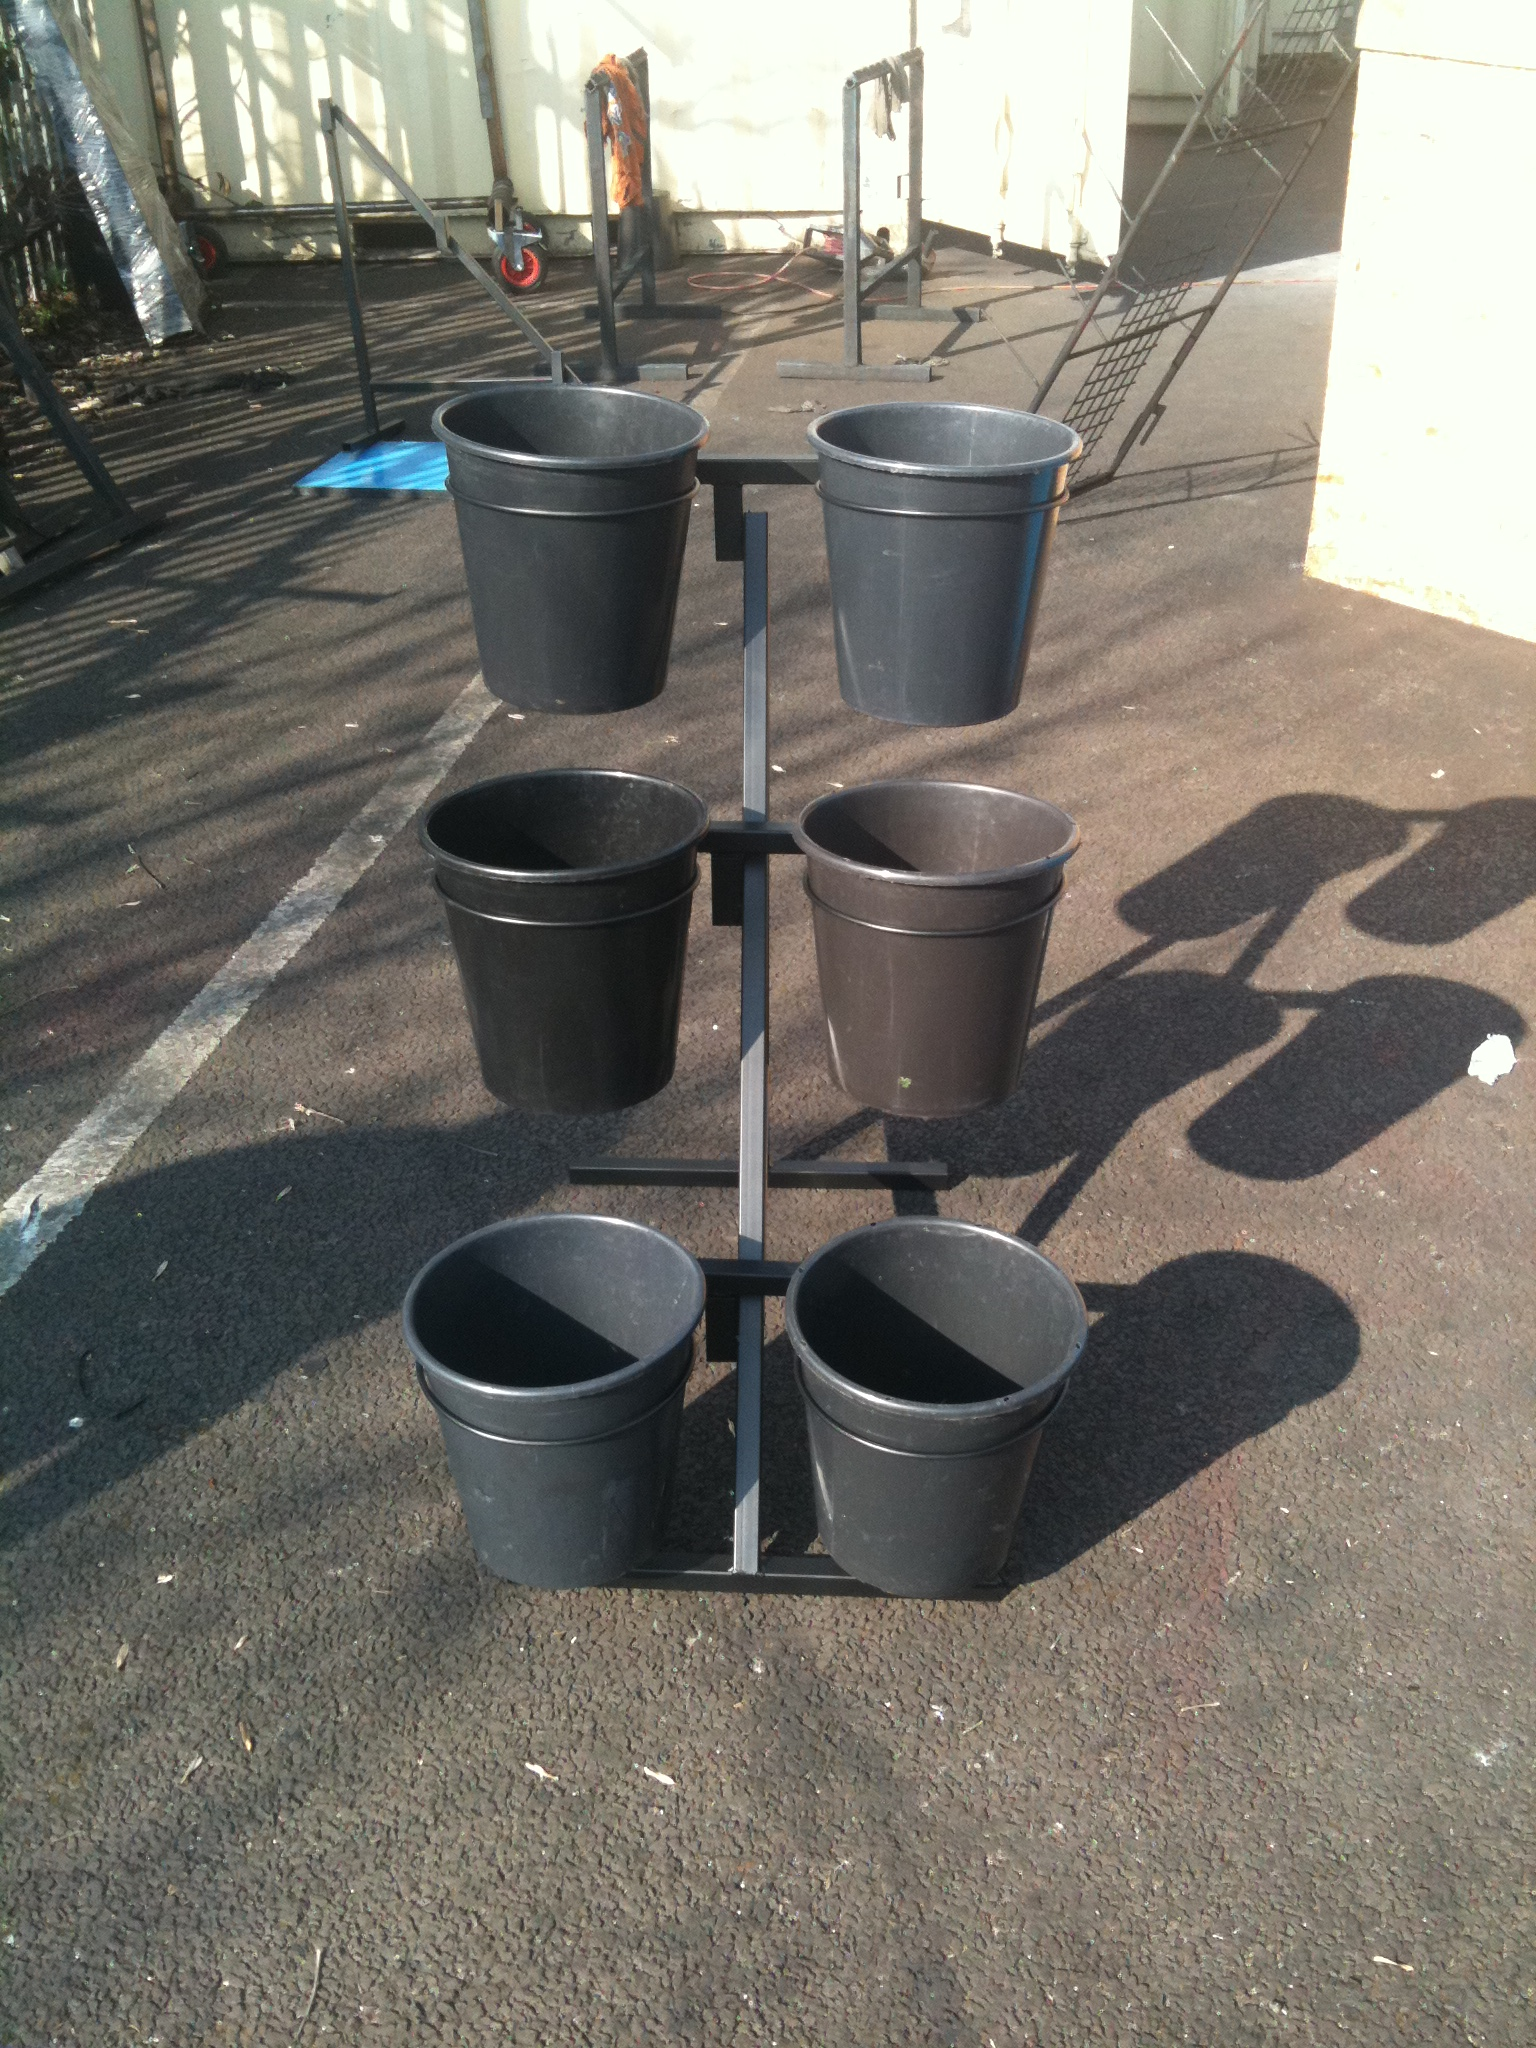 6 Bucket Flower Stand Uk Display Stands Shop